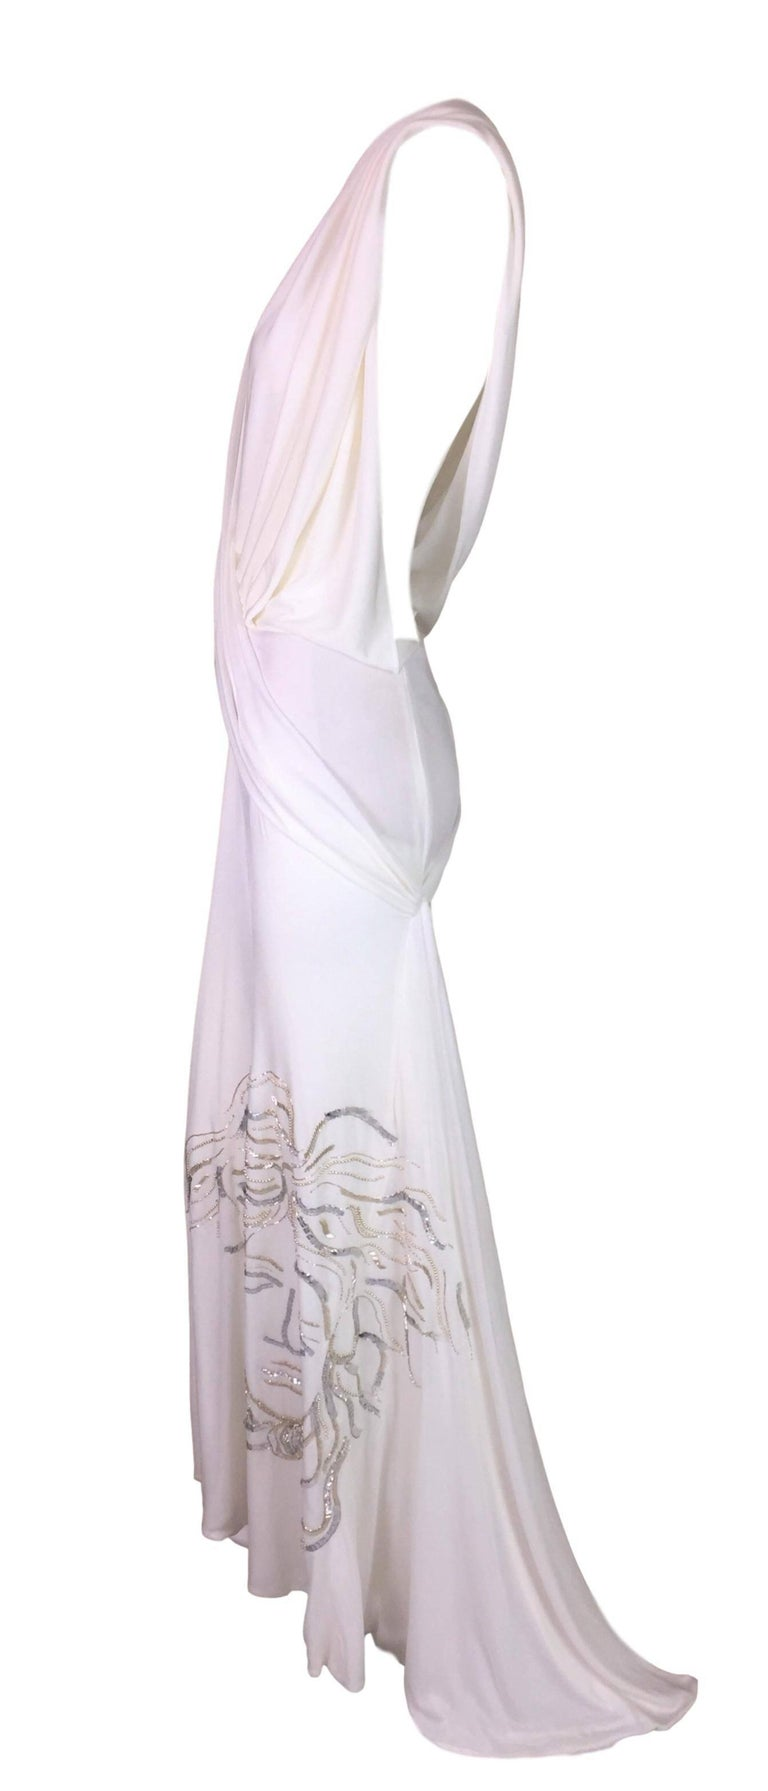 F/W 1999 Atelier Versace Sheer White Plunging Beaded Medusa Gown ...